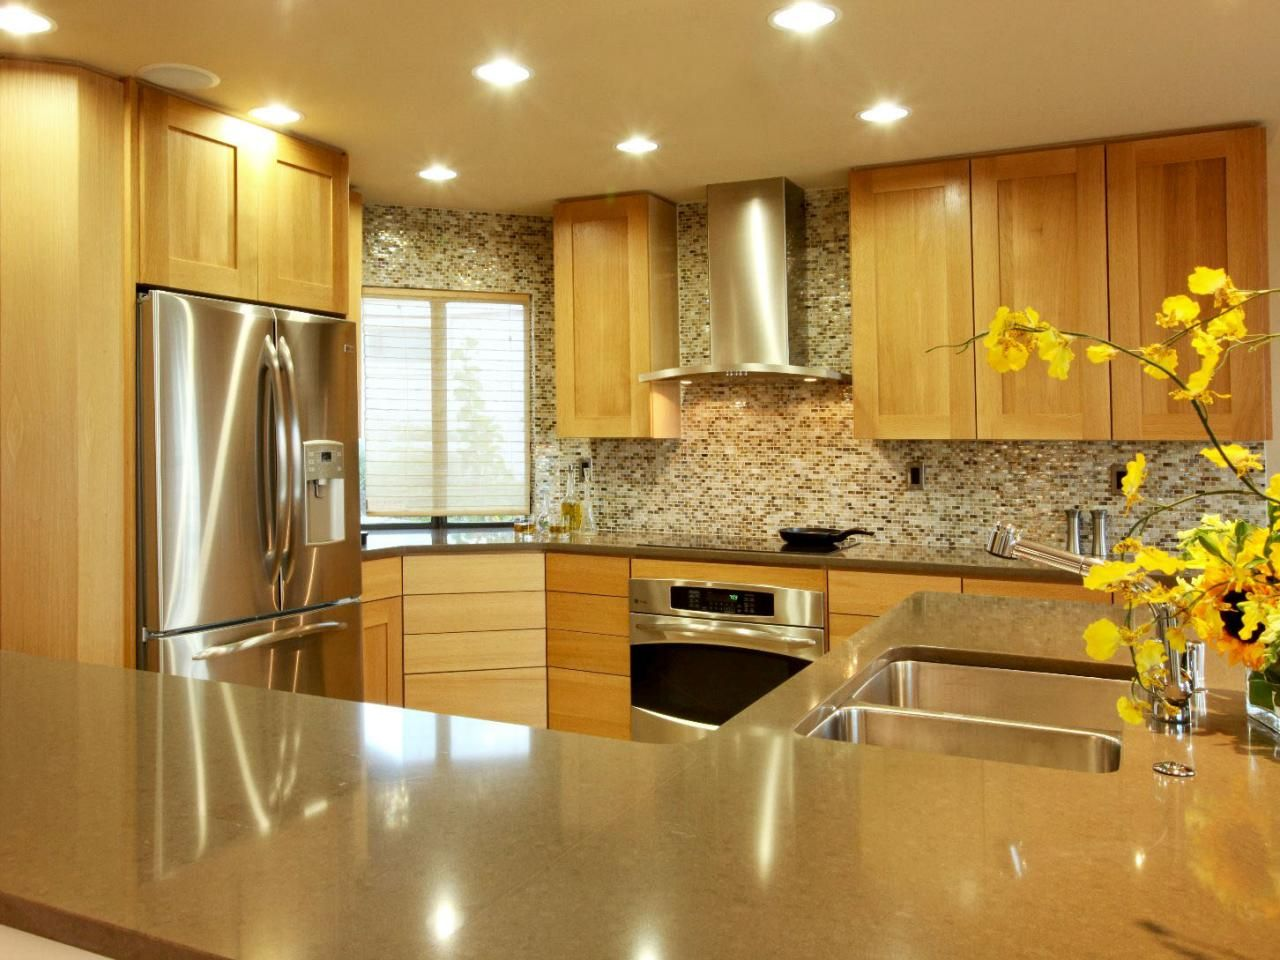 this traditional kitchen with inset wood cabinets and stainless